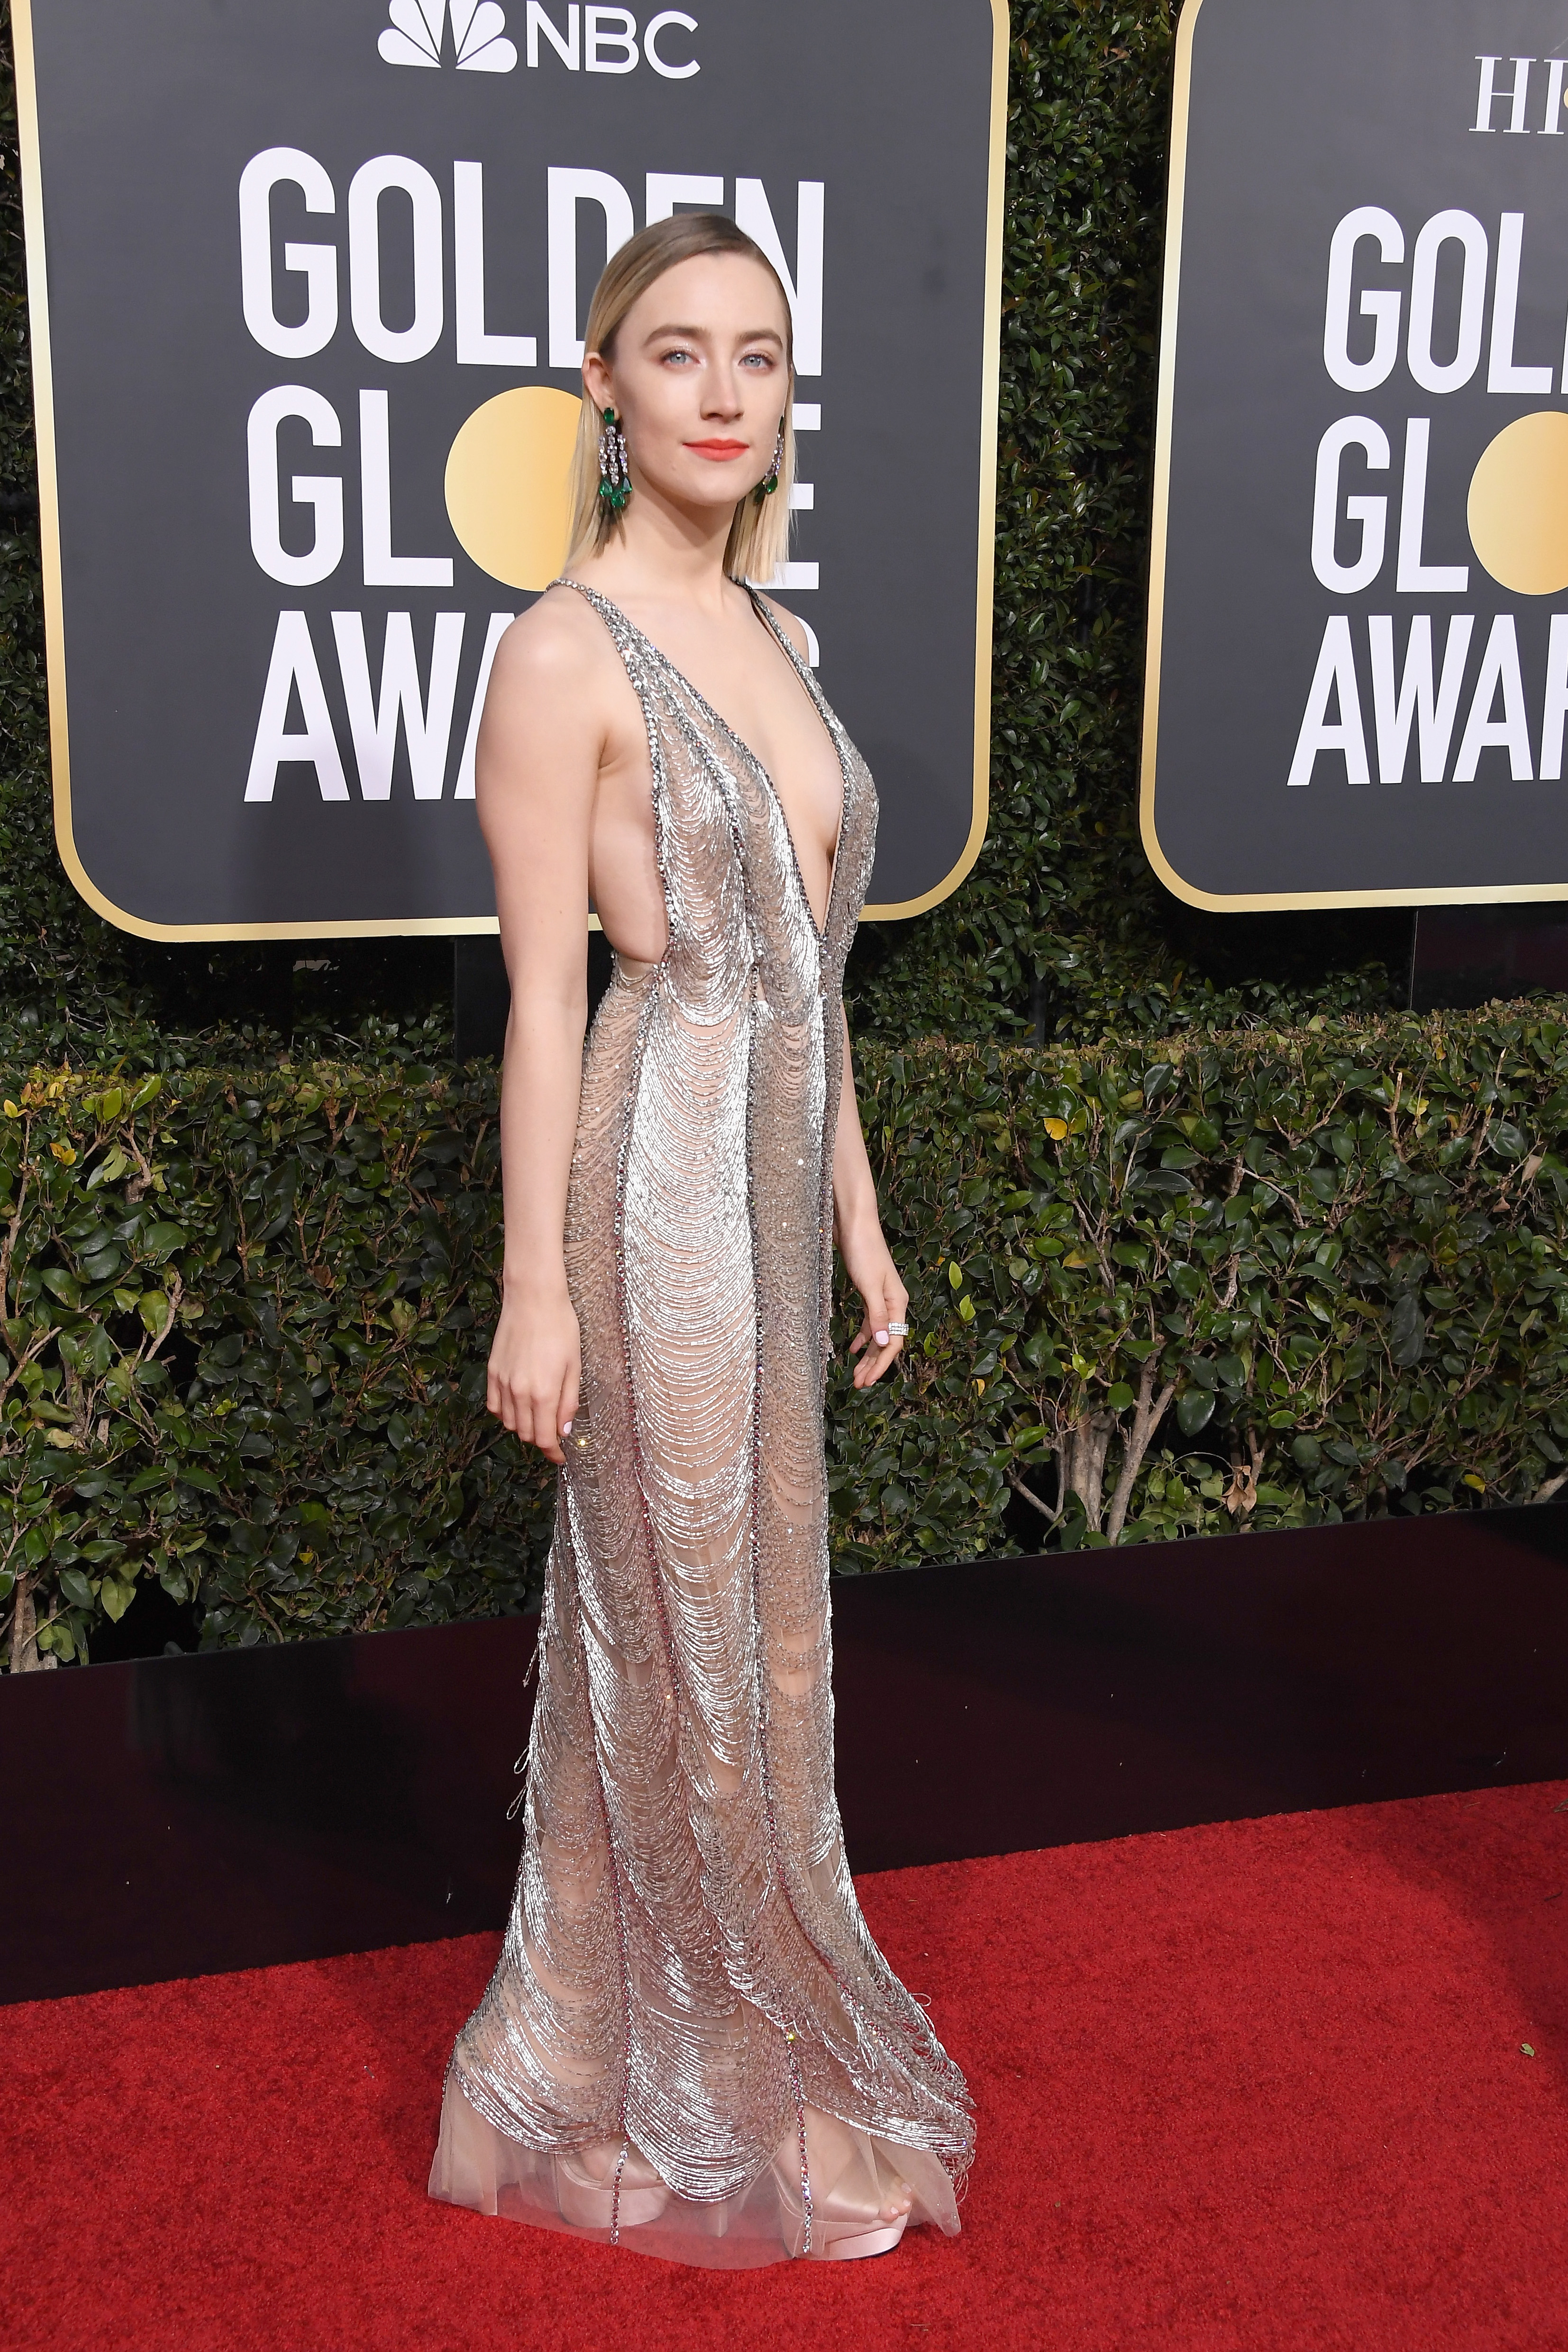 85dccc352c9 Golden Globes best fashion on the red carpet - CNN Style